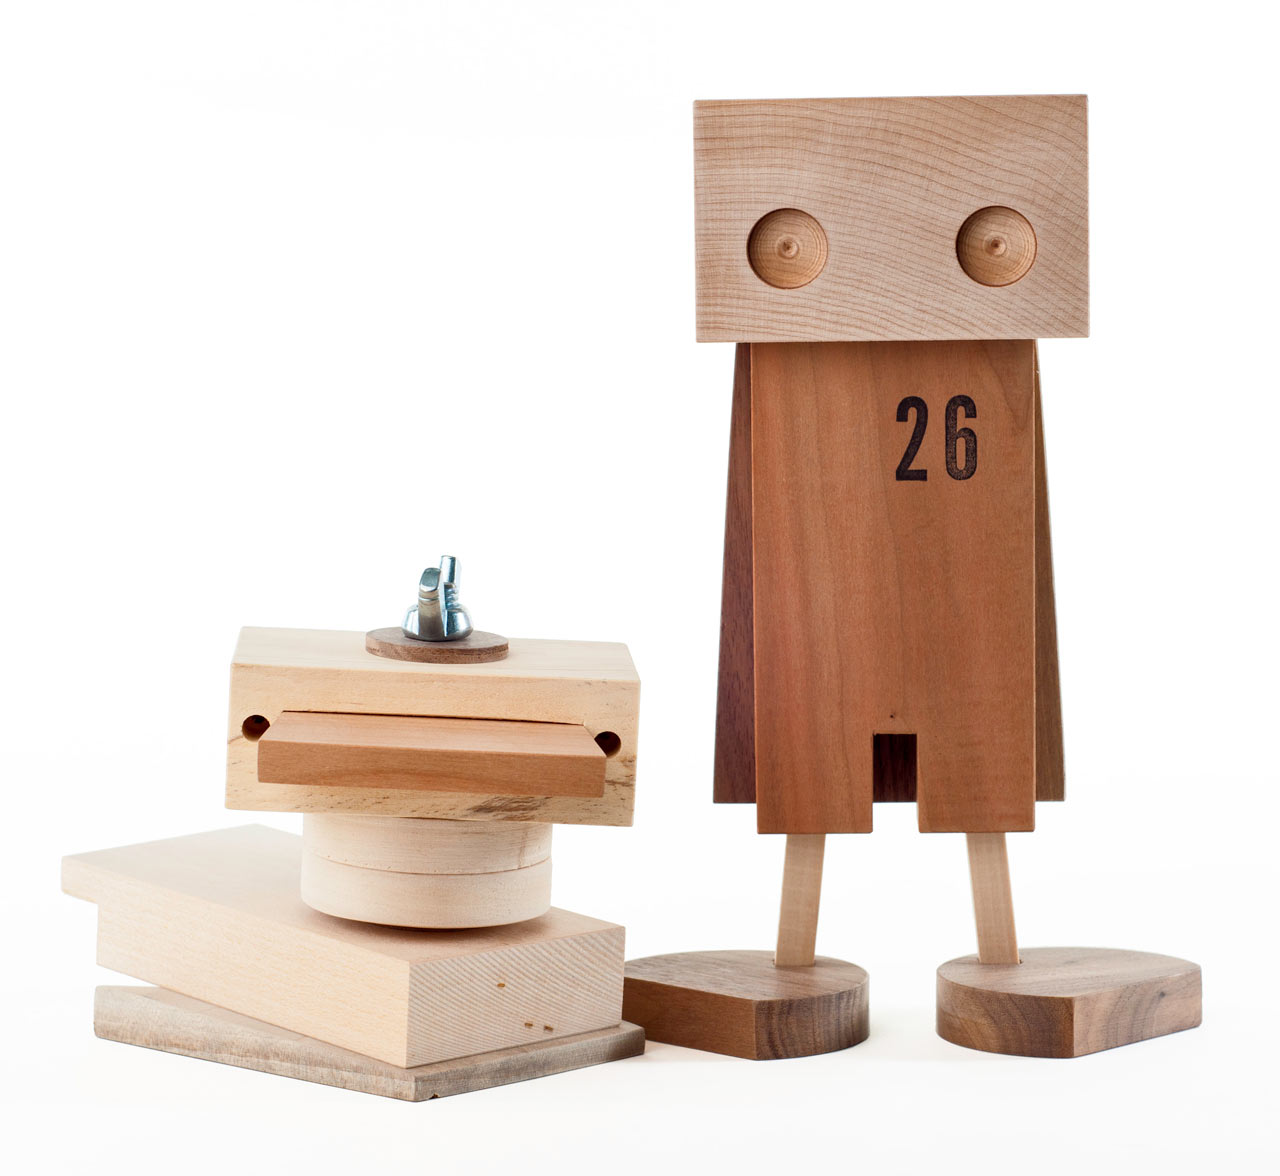 Handmade Wooden Toys Made from Scrap Wood